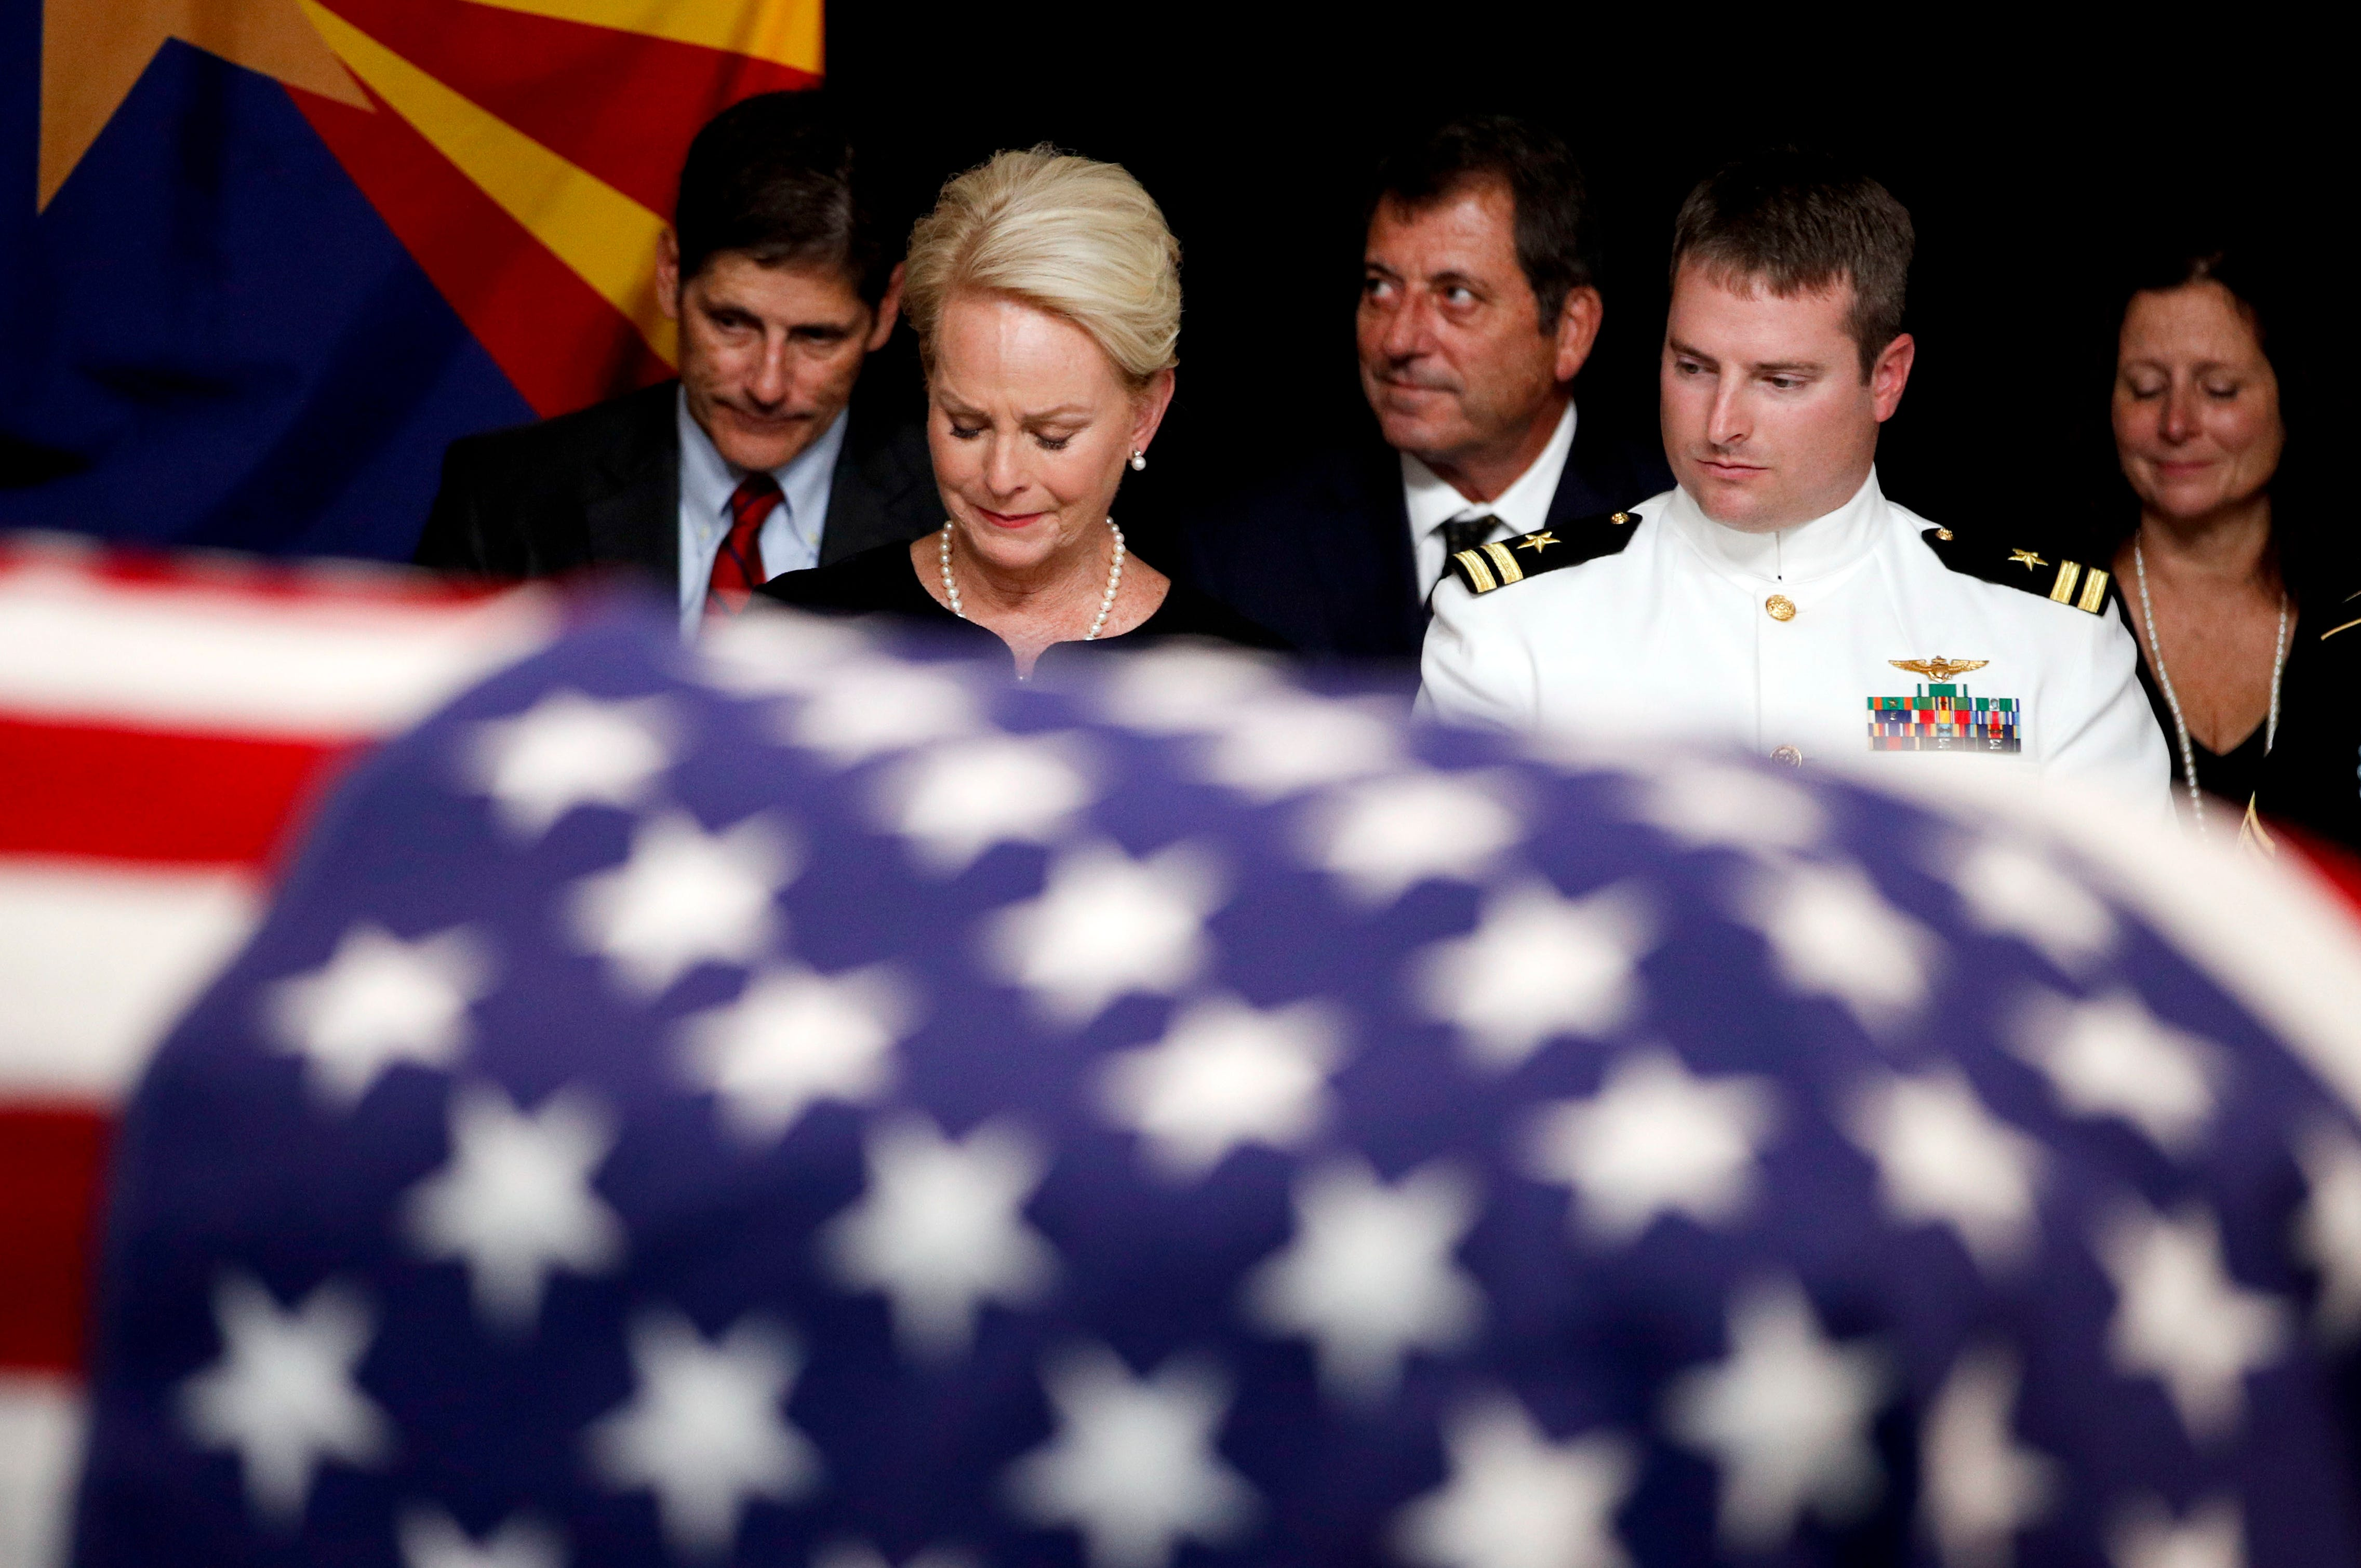 Nation's political leaders pay tribute as John McCain lies in state at U.S. Capitol